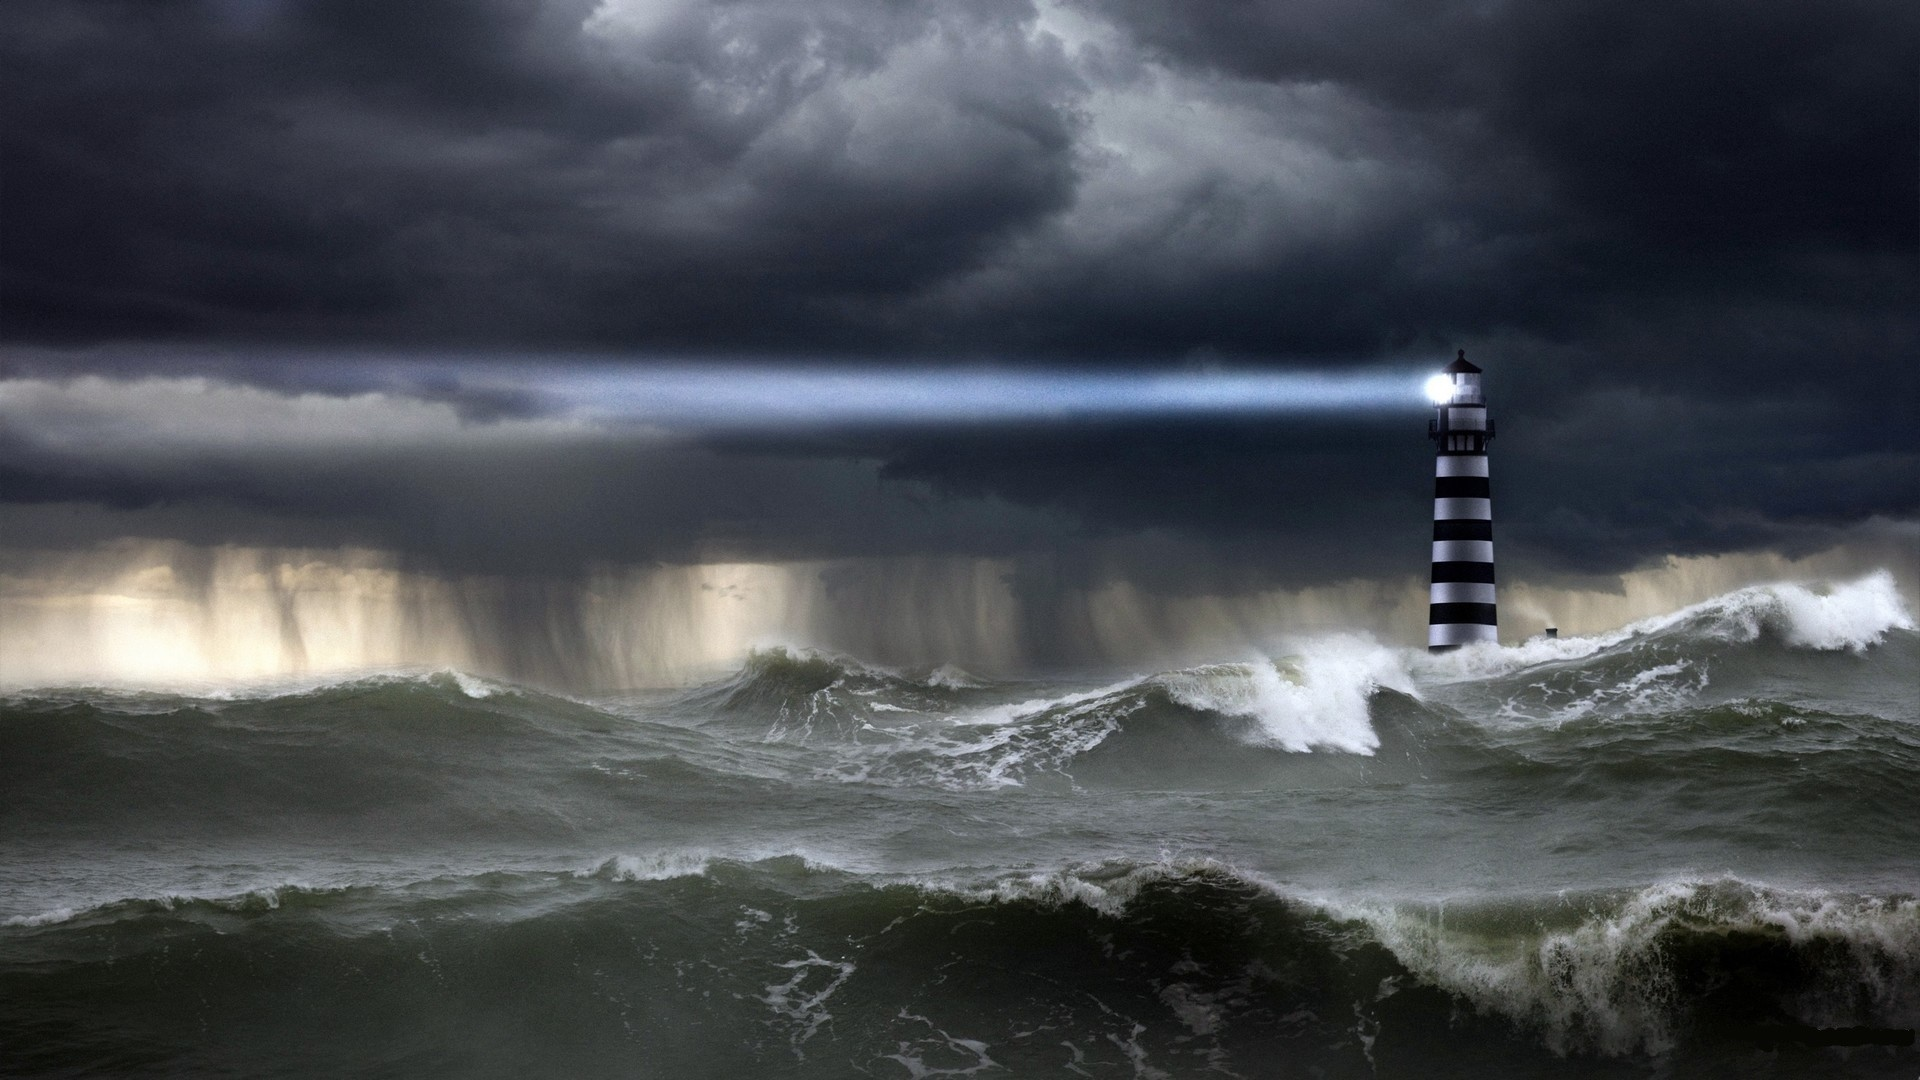 Explore Stormy Sea, Jim O'rourke, and more!